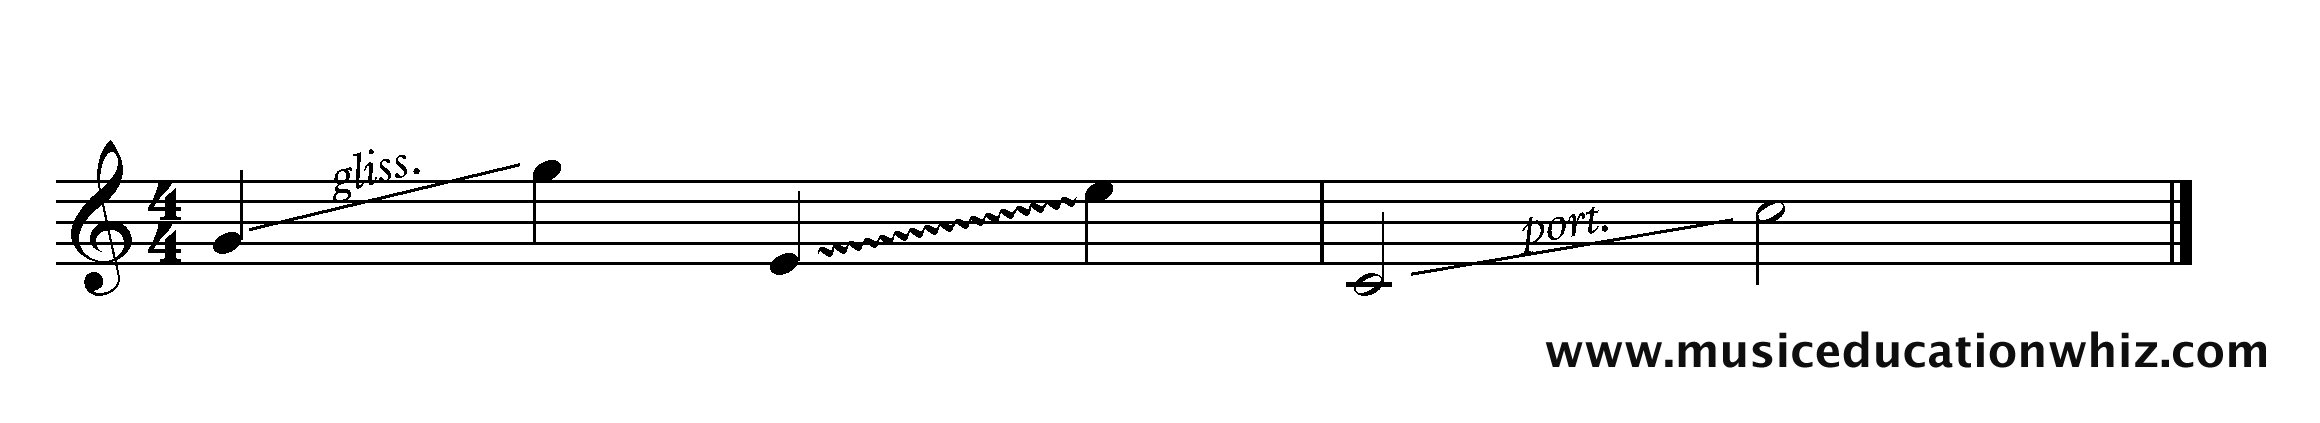 wiggly diagonal lines between a low note and a high note, with or without bliss. or port. written above